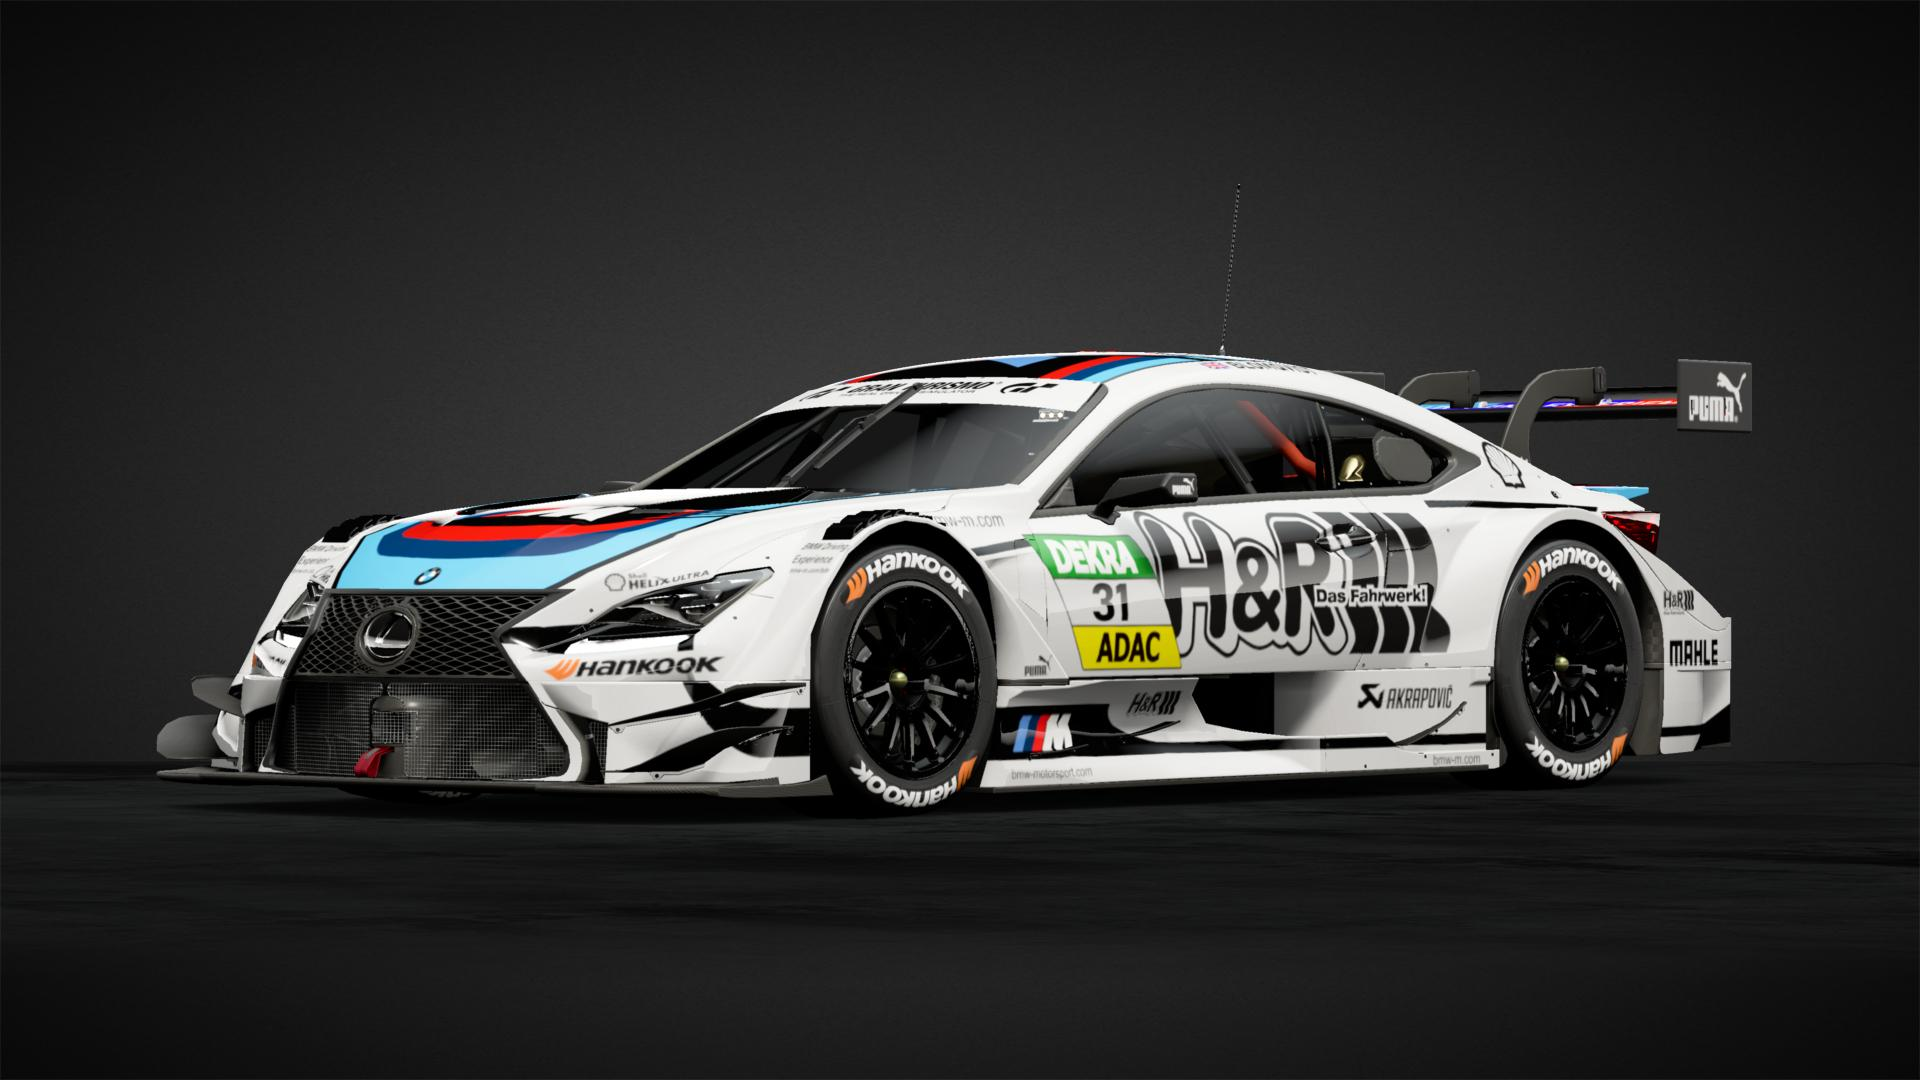 Bmw team rmr #31 bmw m4 dtm car livery by fte82 community gran